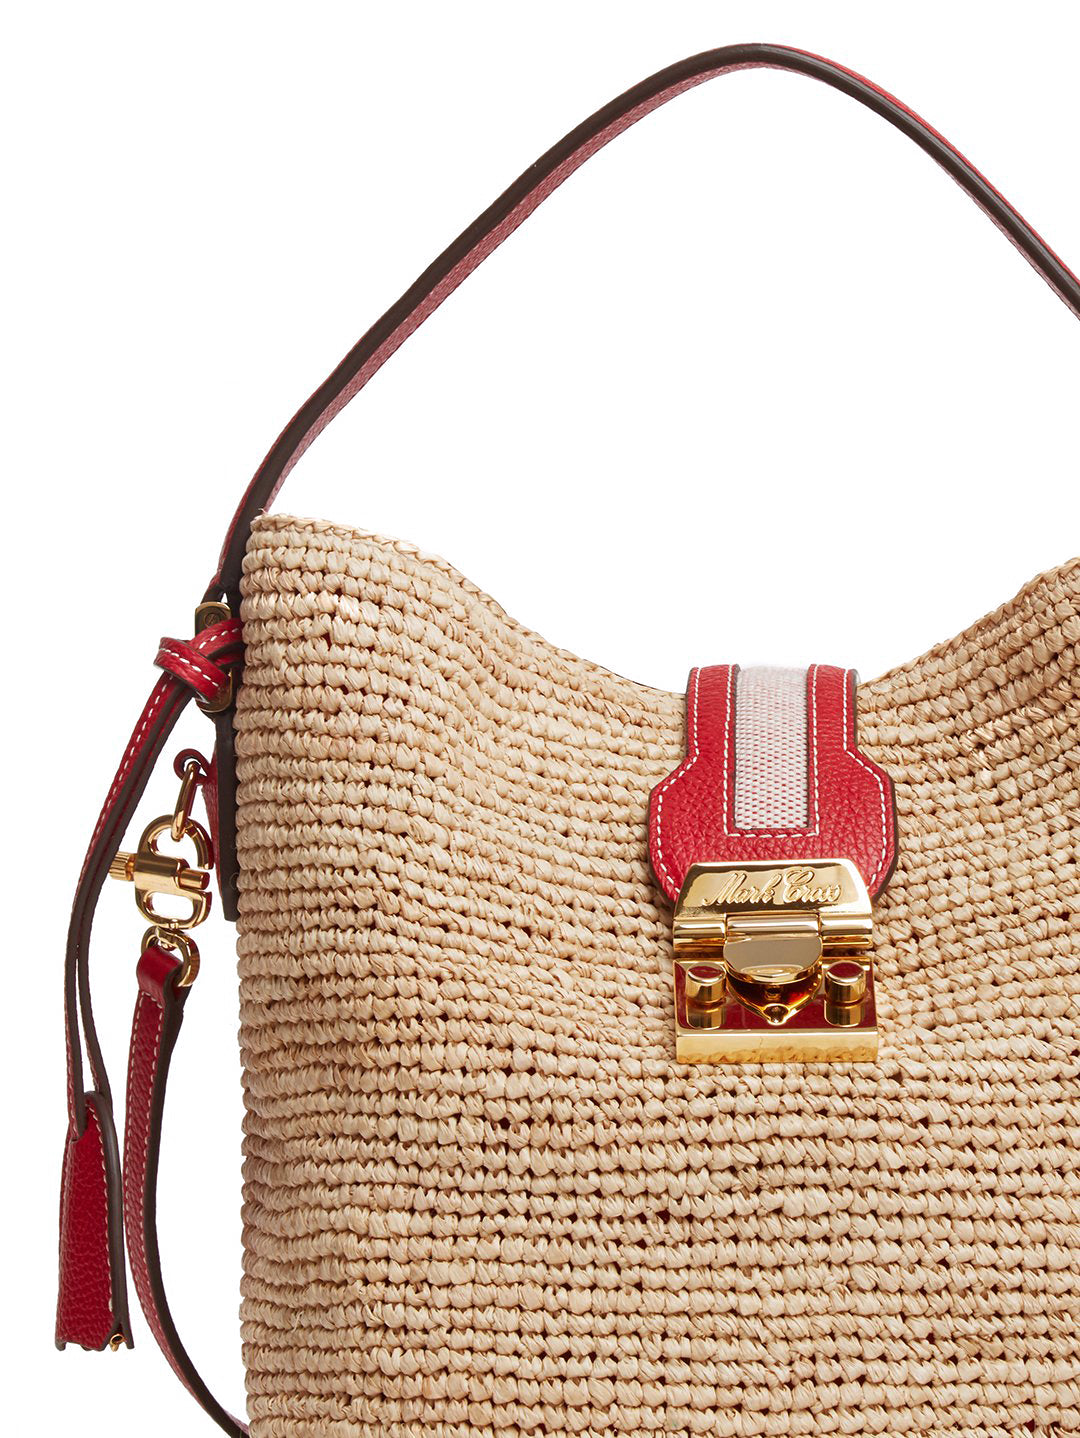 Mark Cross Murphy Raffia & Leather Bucket Bag Tumbled Grain Mc Red / Birdseye / Natural Raffia Detail